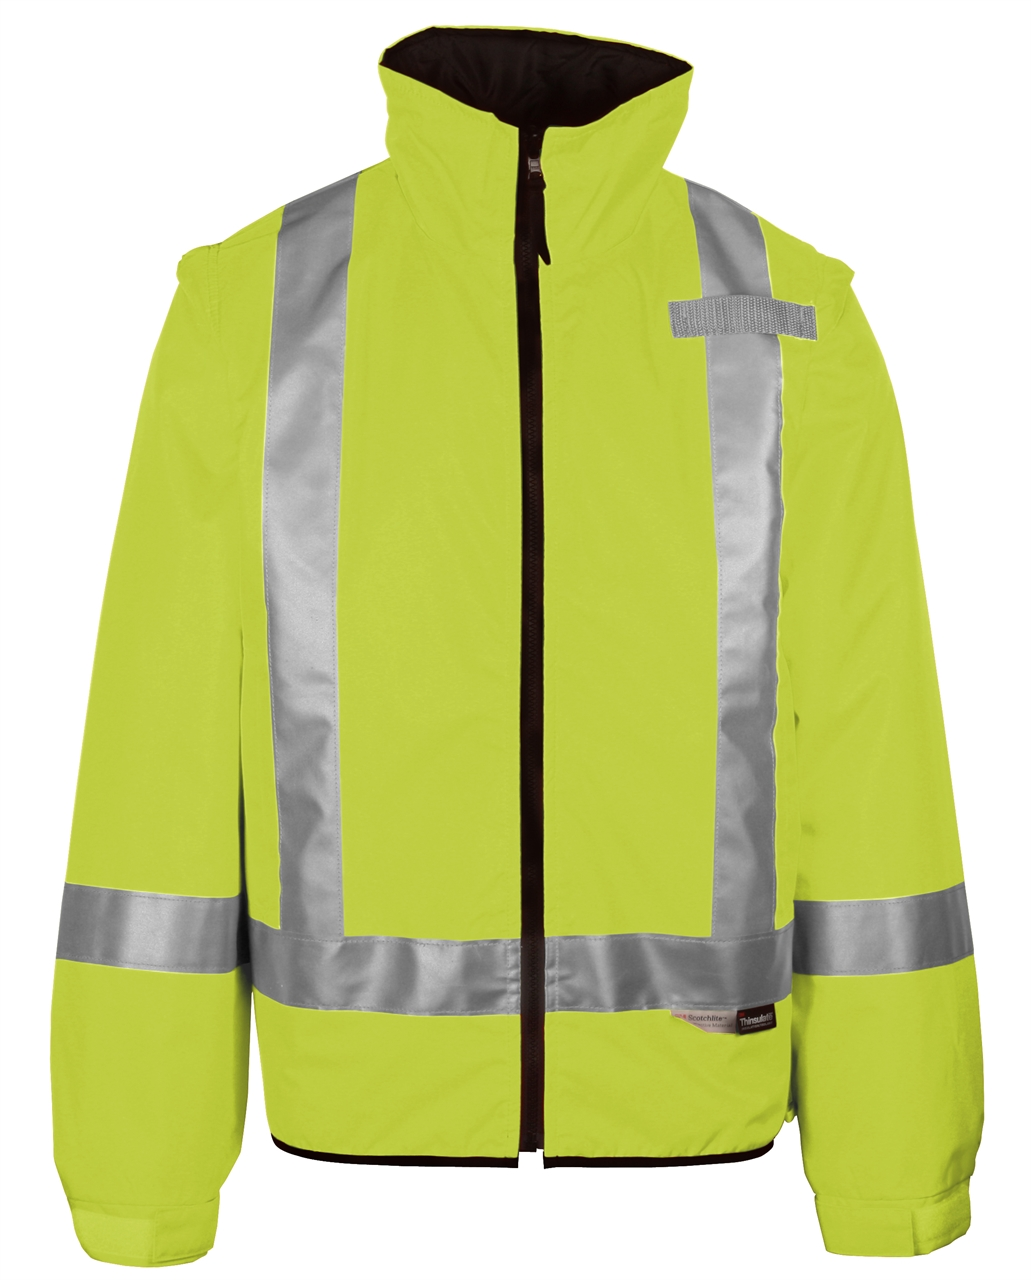 Picture of Sumaggo High Visibility 2-In-1 Thermal Jacket W/ Detachable Sleeves